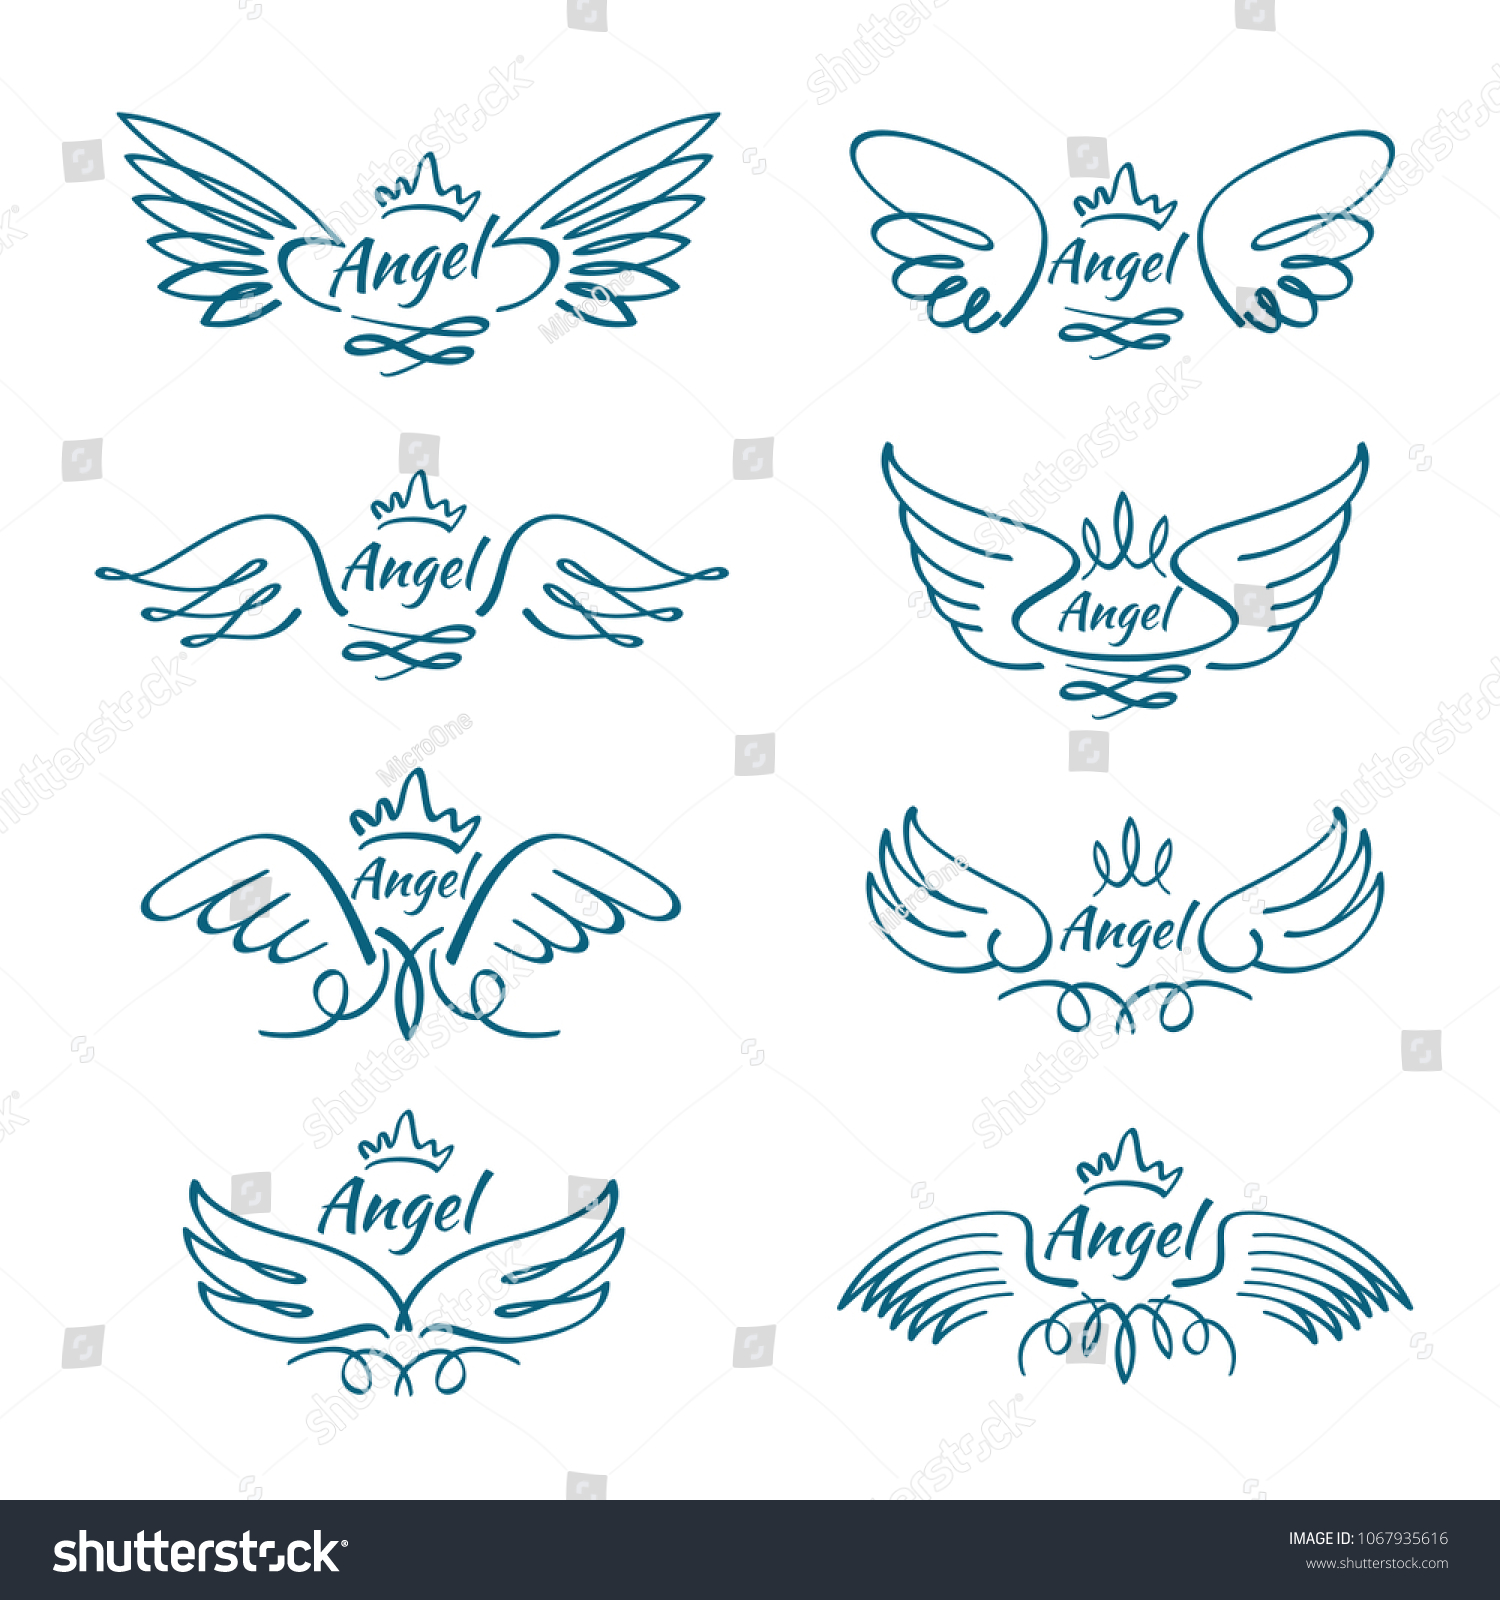 Elegant Angel Flying Wings Hand Drawn Stock Illustration 1067935616